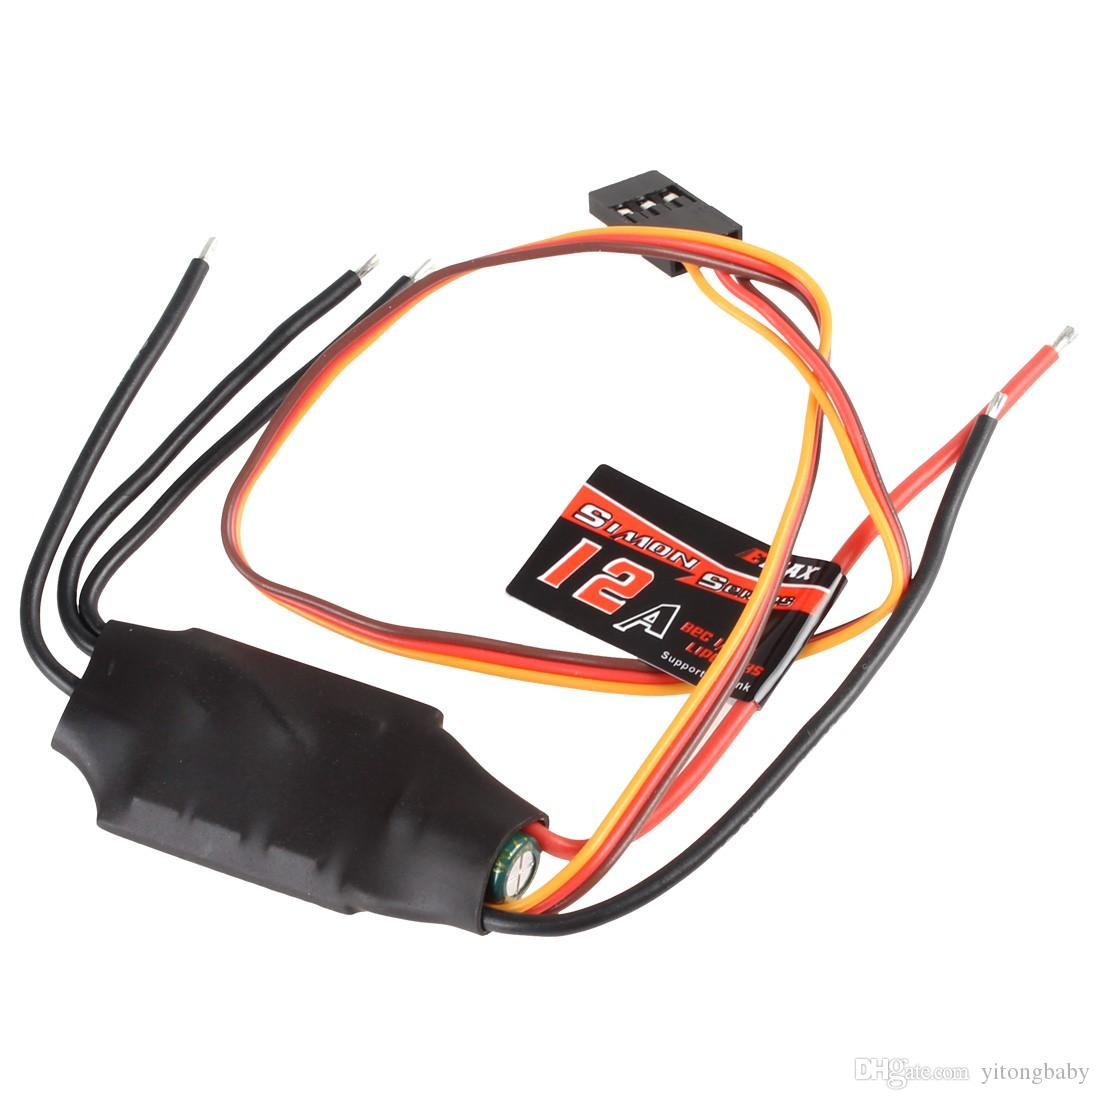 2018 Emax 12a Simon Rc Brushless Esc Electronic Governor Supports 1 Wiring 3s Small Axis Aircraft From Yitongbaby 654